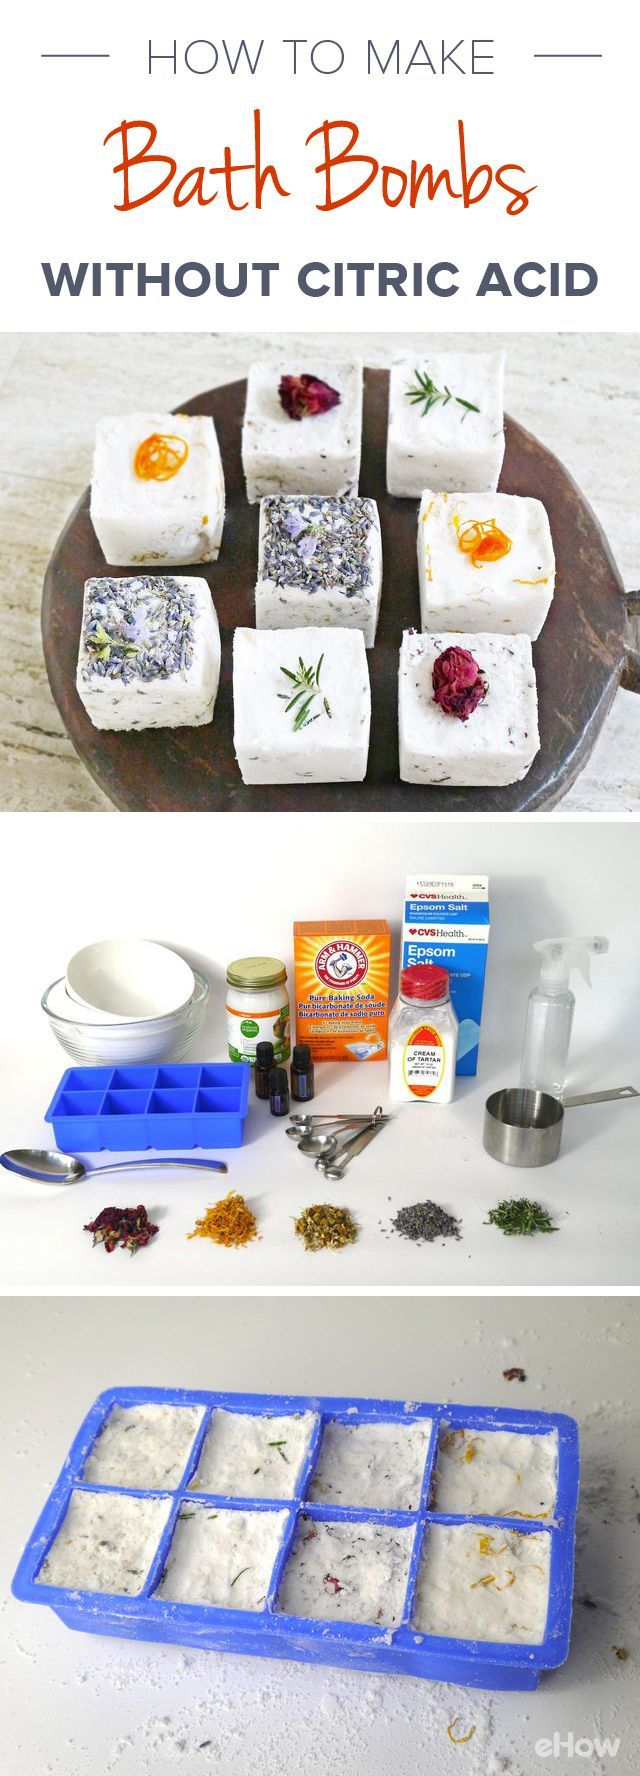 Bath bombs leave your bathwater cleansing & soothing. However, bath bombs can be expensive and include citric acid that can be harsh on your skin. DIY it using ingredients found at the grocery store, and omit the citric acid. This recipe calls for cream of tartar, which, when combined with baking soda, will give you the same fizzy results!